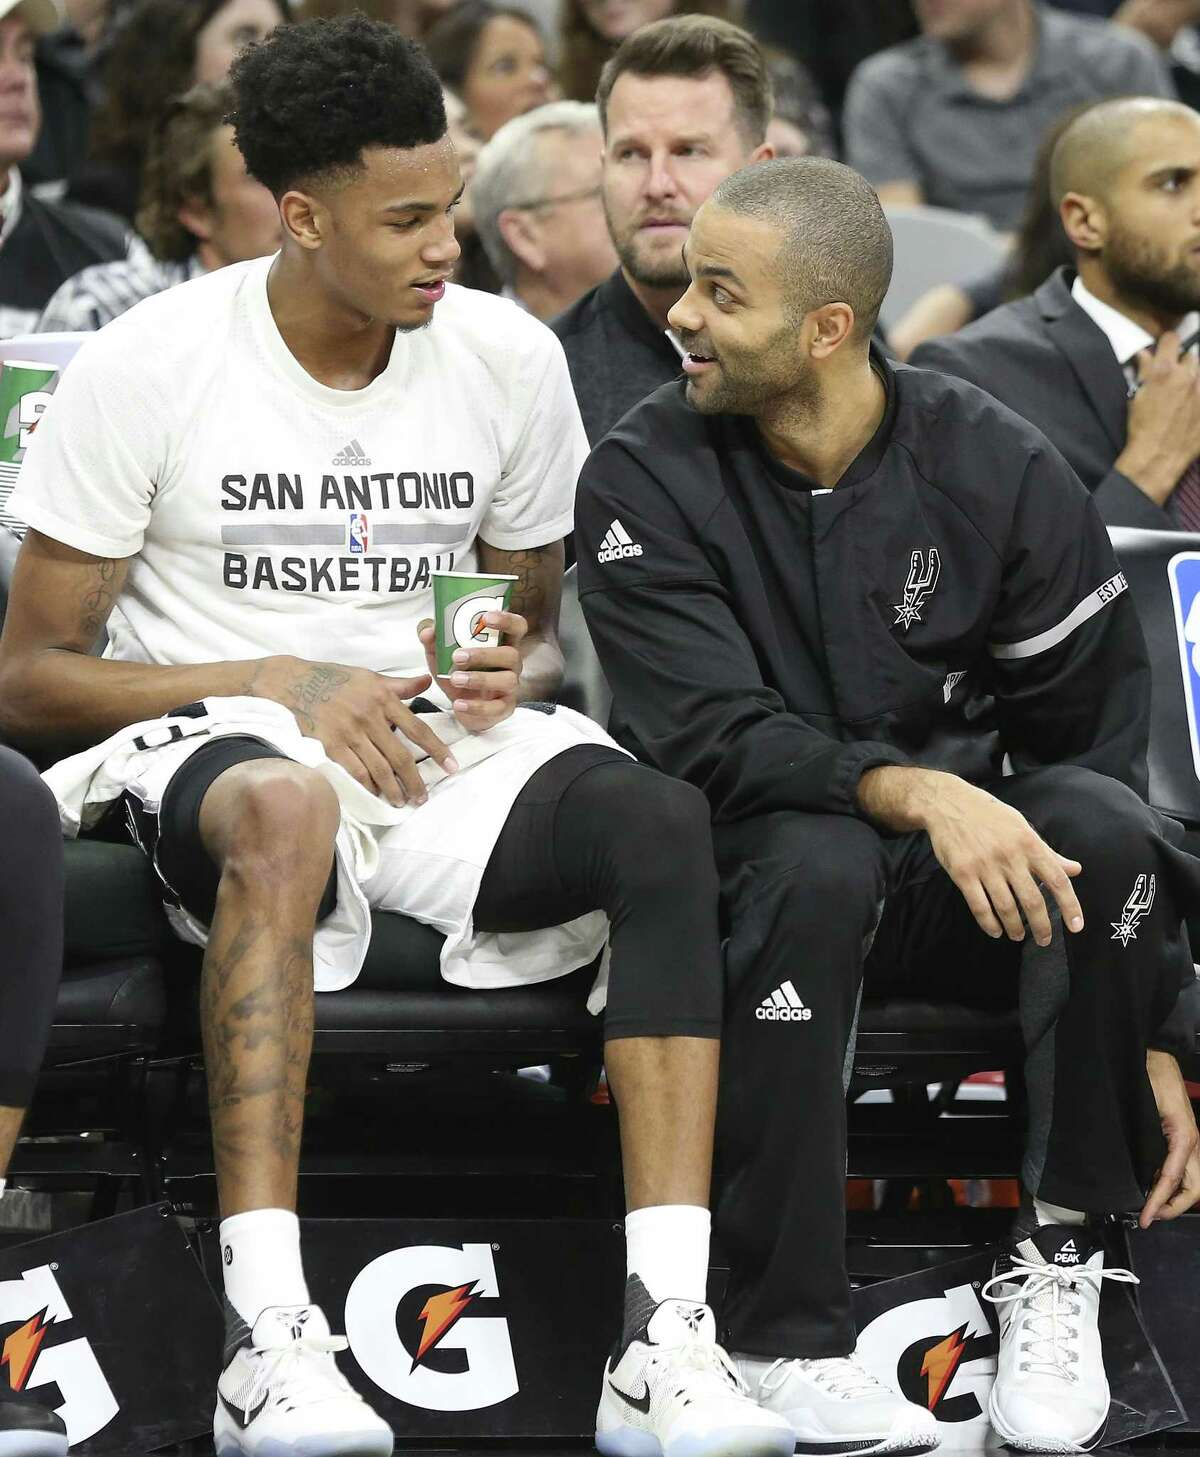 1. Starting point guard Who will Gregg Popovich tab as the starting point guard? With Tony Parker still out for at least several more weeks, second-year man Dejounte Murray figures to get a long look. Veteran Patty Mills is an option too, although he has been an effective contributor off the bench.